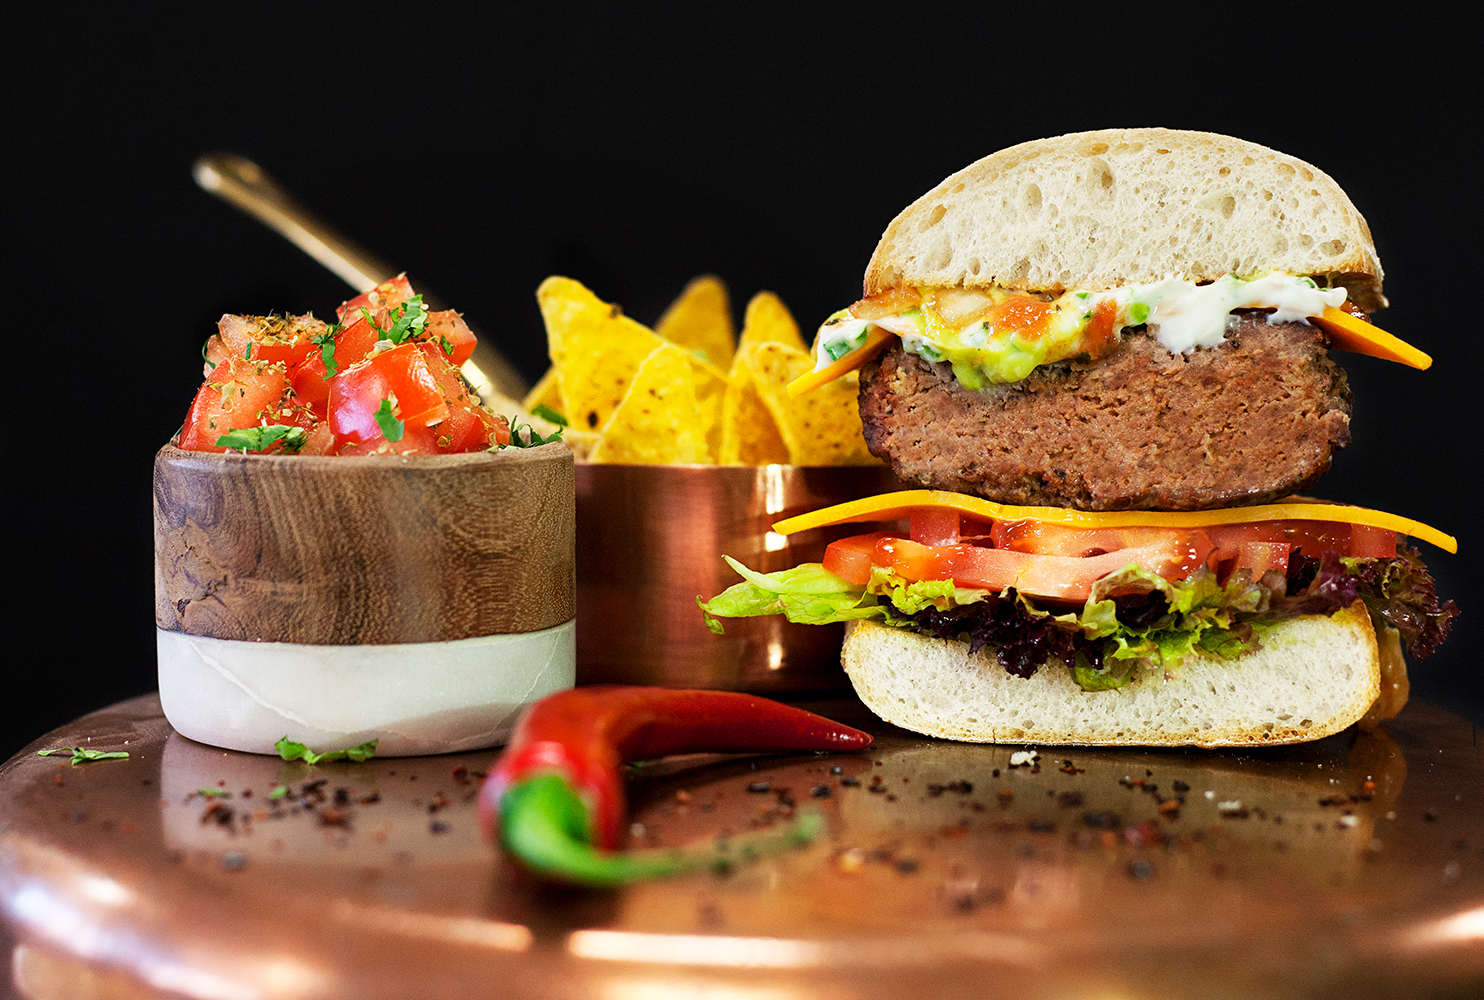 GOURMET MOROCCAN BURGER MIX